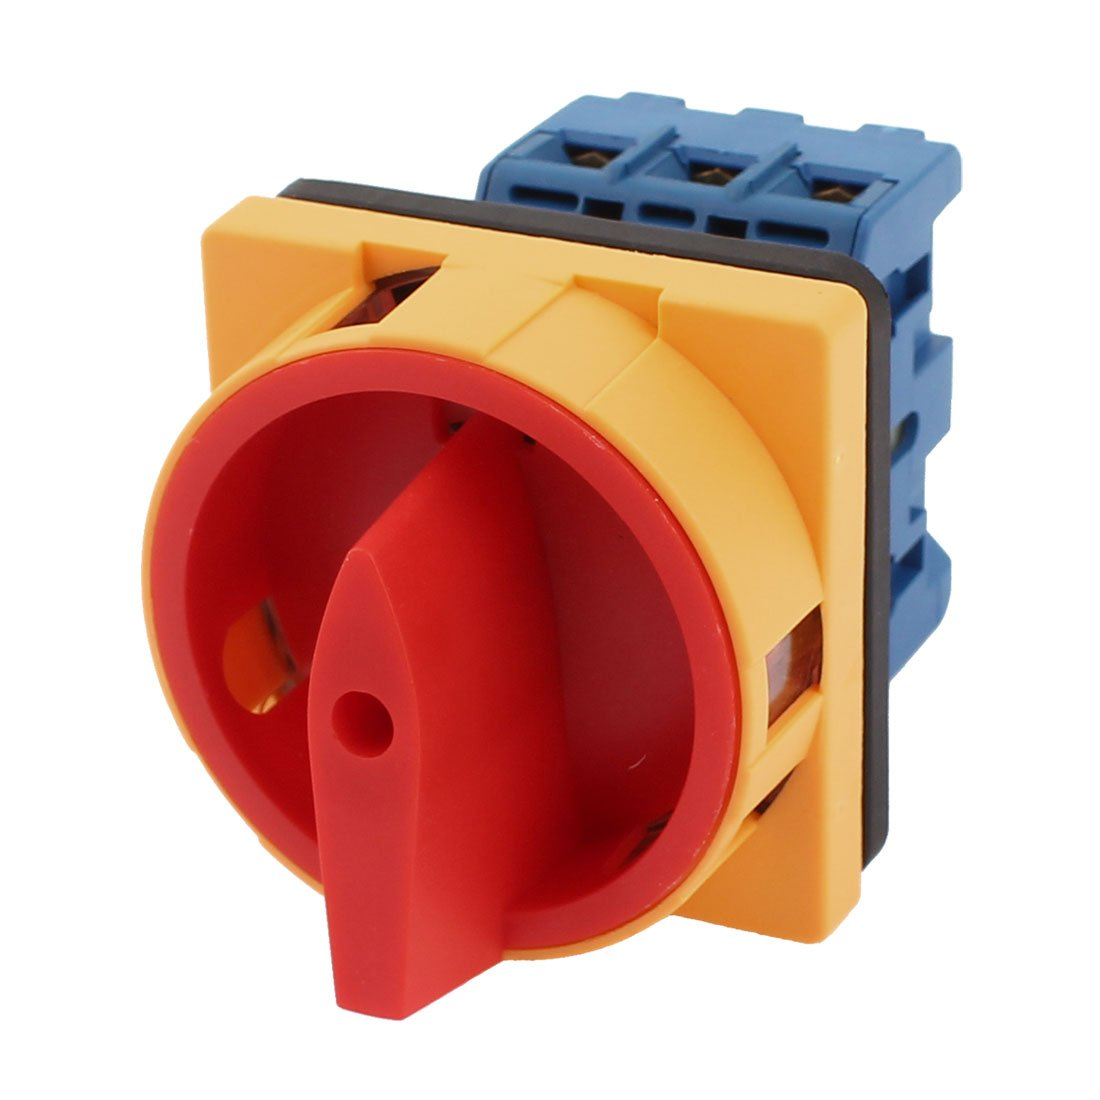 uxcell GLD11-25//04 ON//OFF 3Phase Rotary Cam Changeover Switch Ui 660V Ith 25A a14092400ux0208